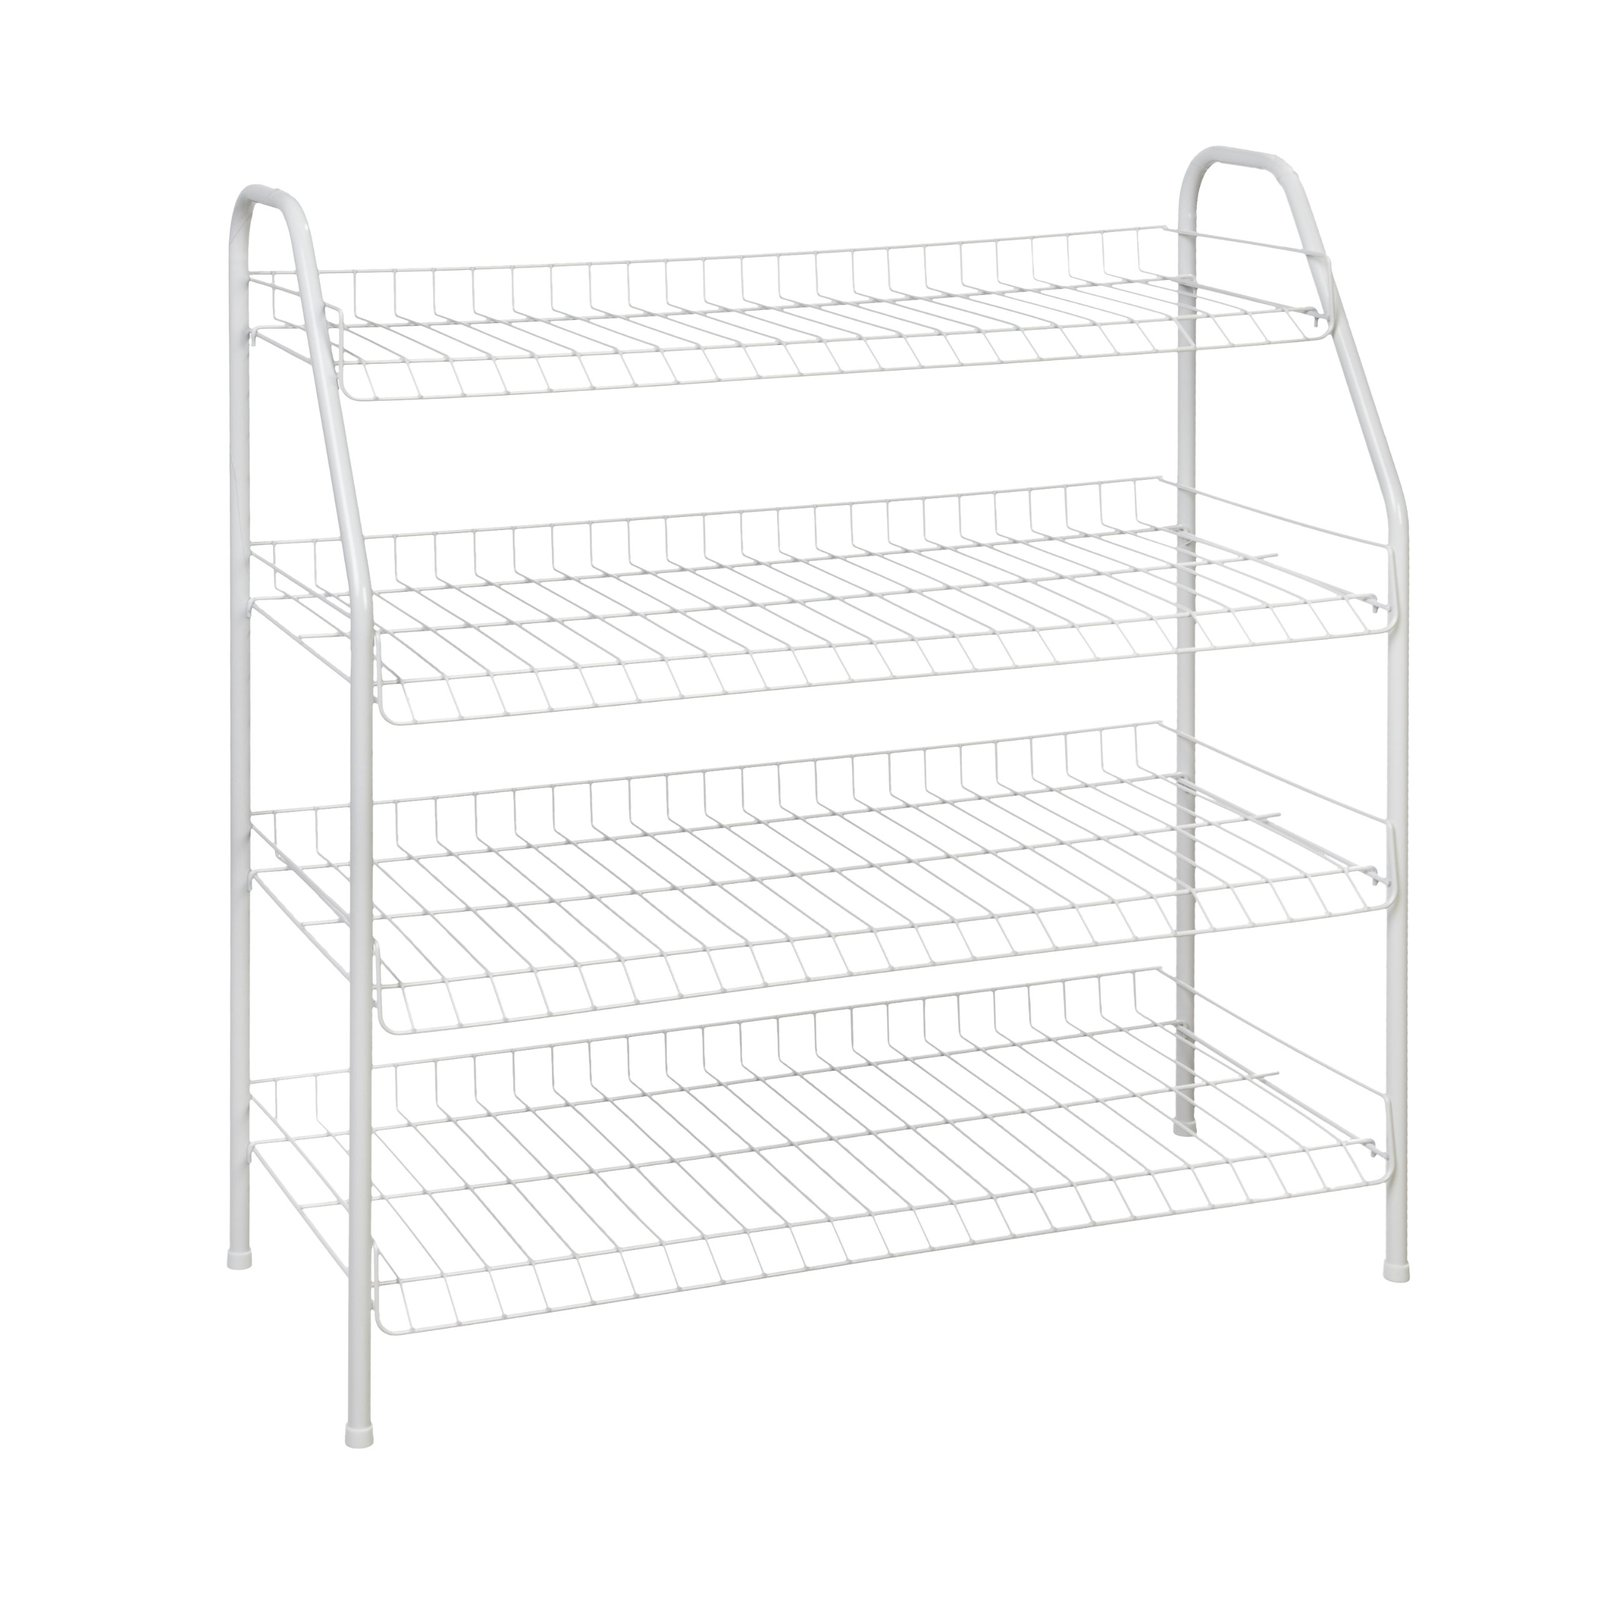 Closetmaid 4 Tier Freestanding Shoe Rack White 1 Pack